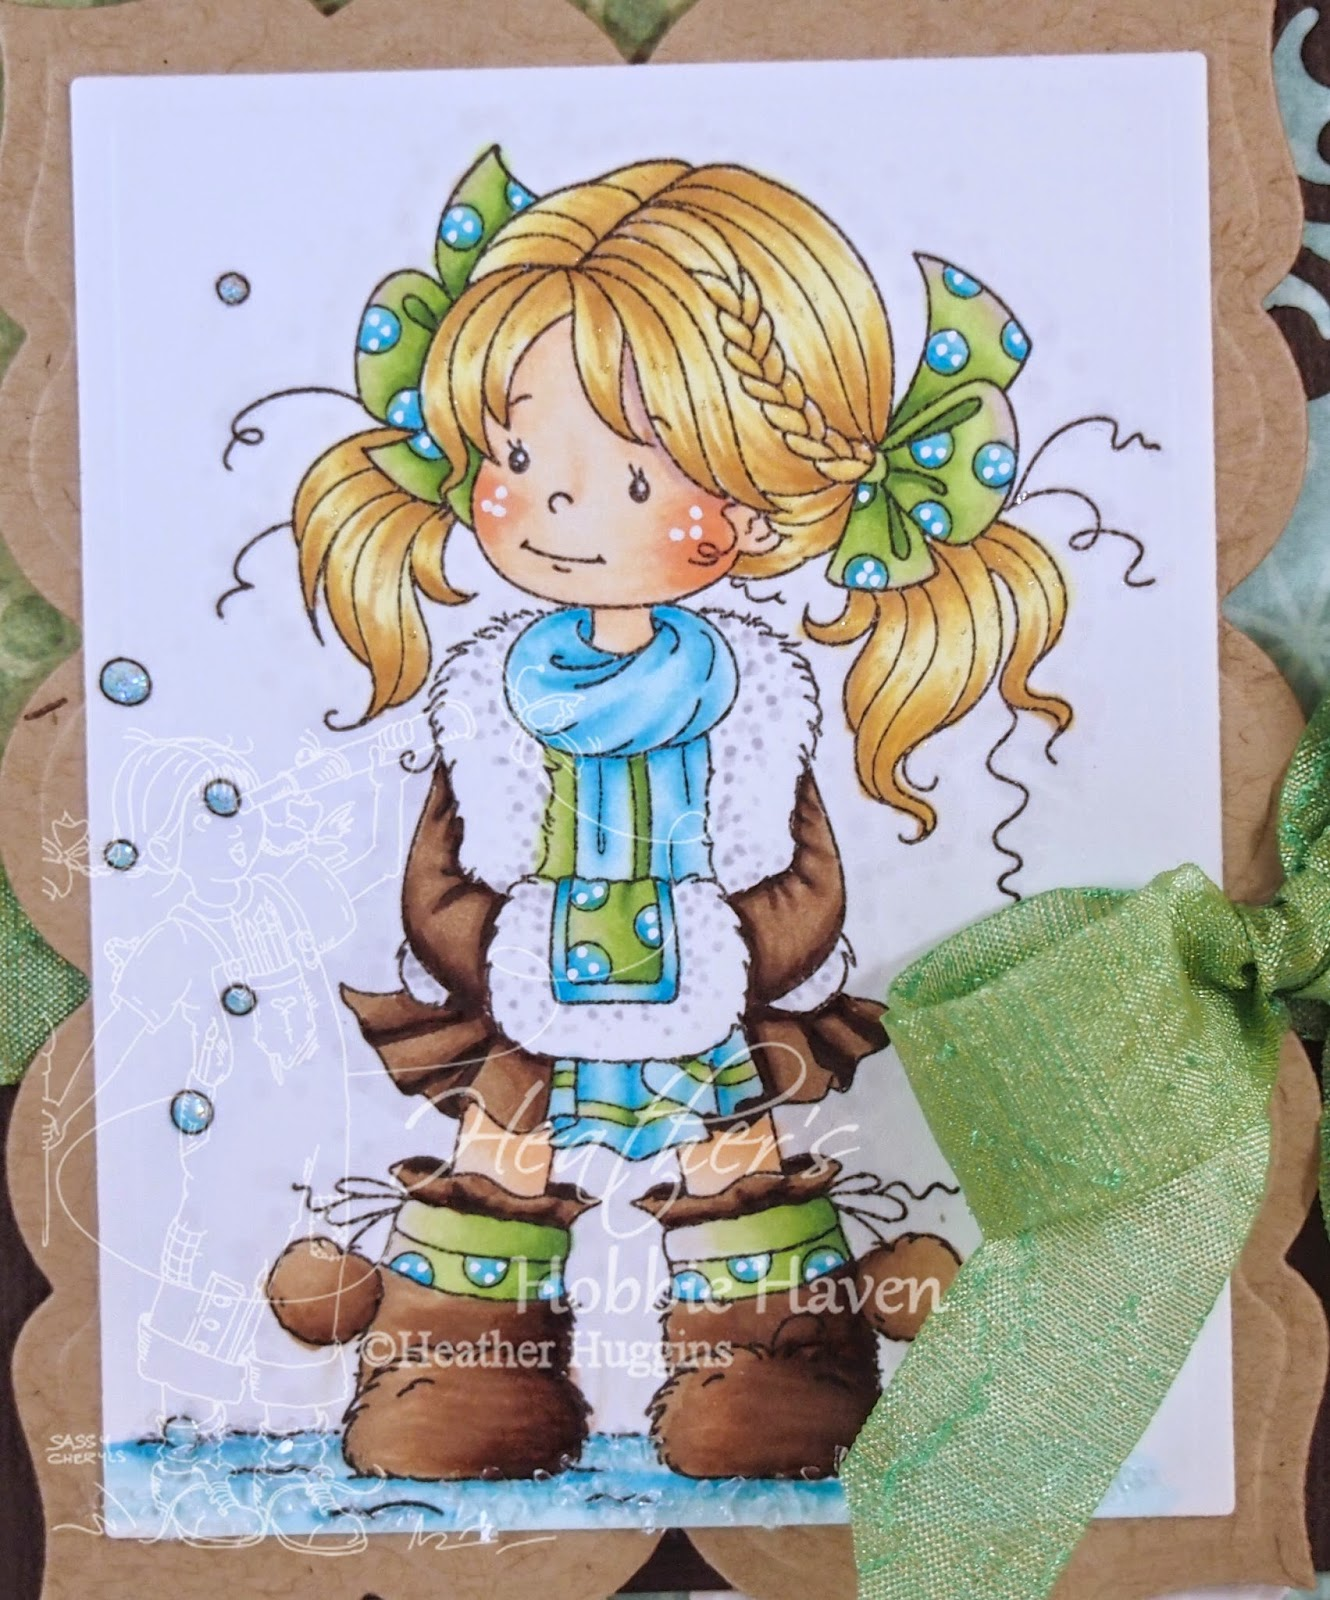 Heather's Hobbie Haven - Heidi Card Kit